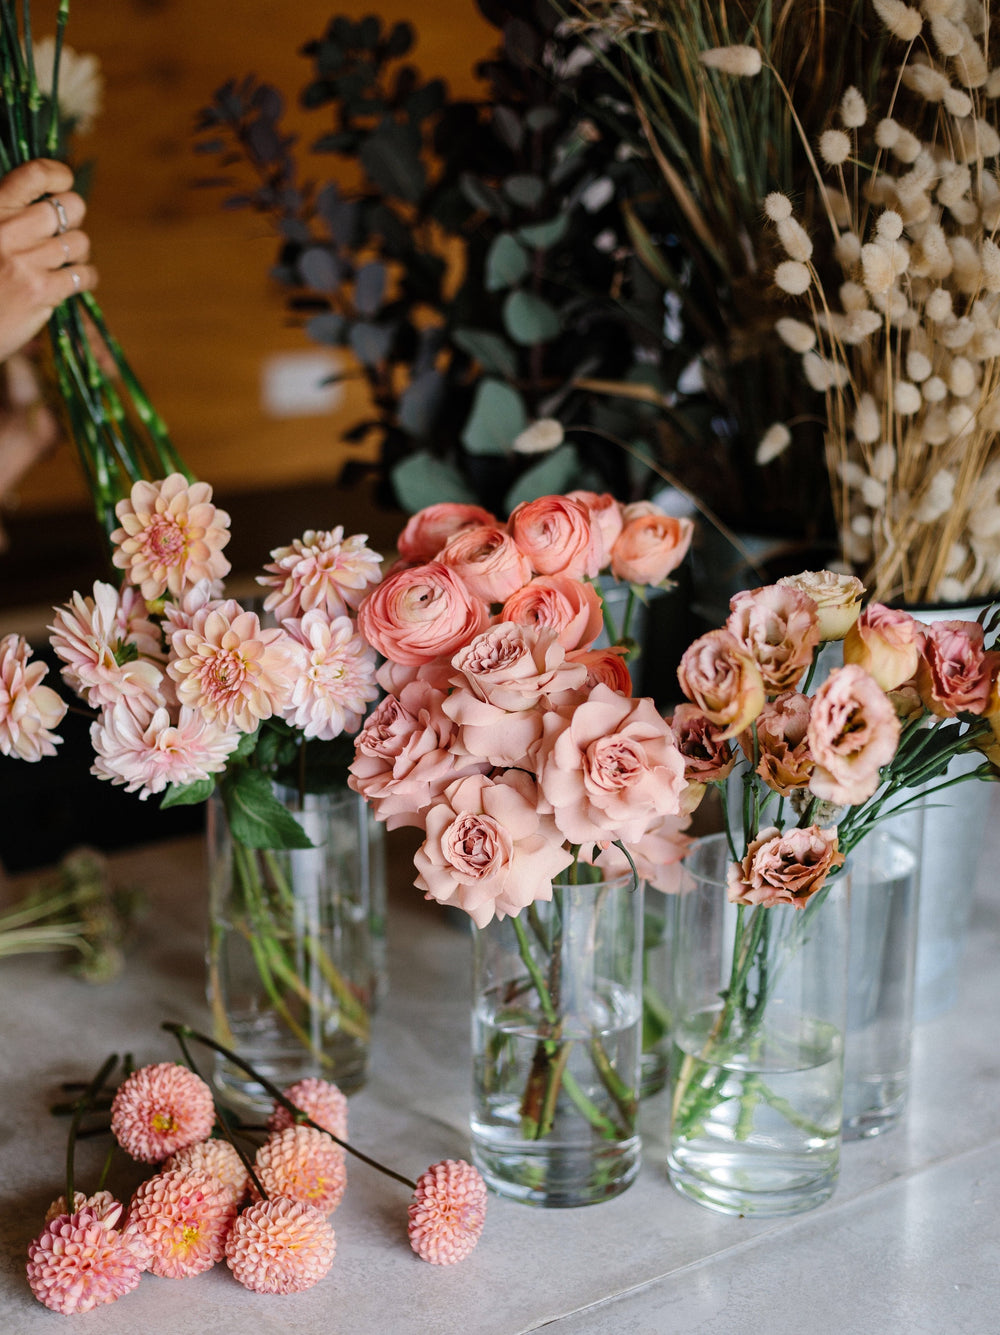 Bouquet workshop with Botanica Fresh Flowers